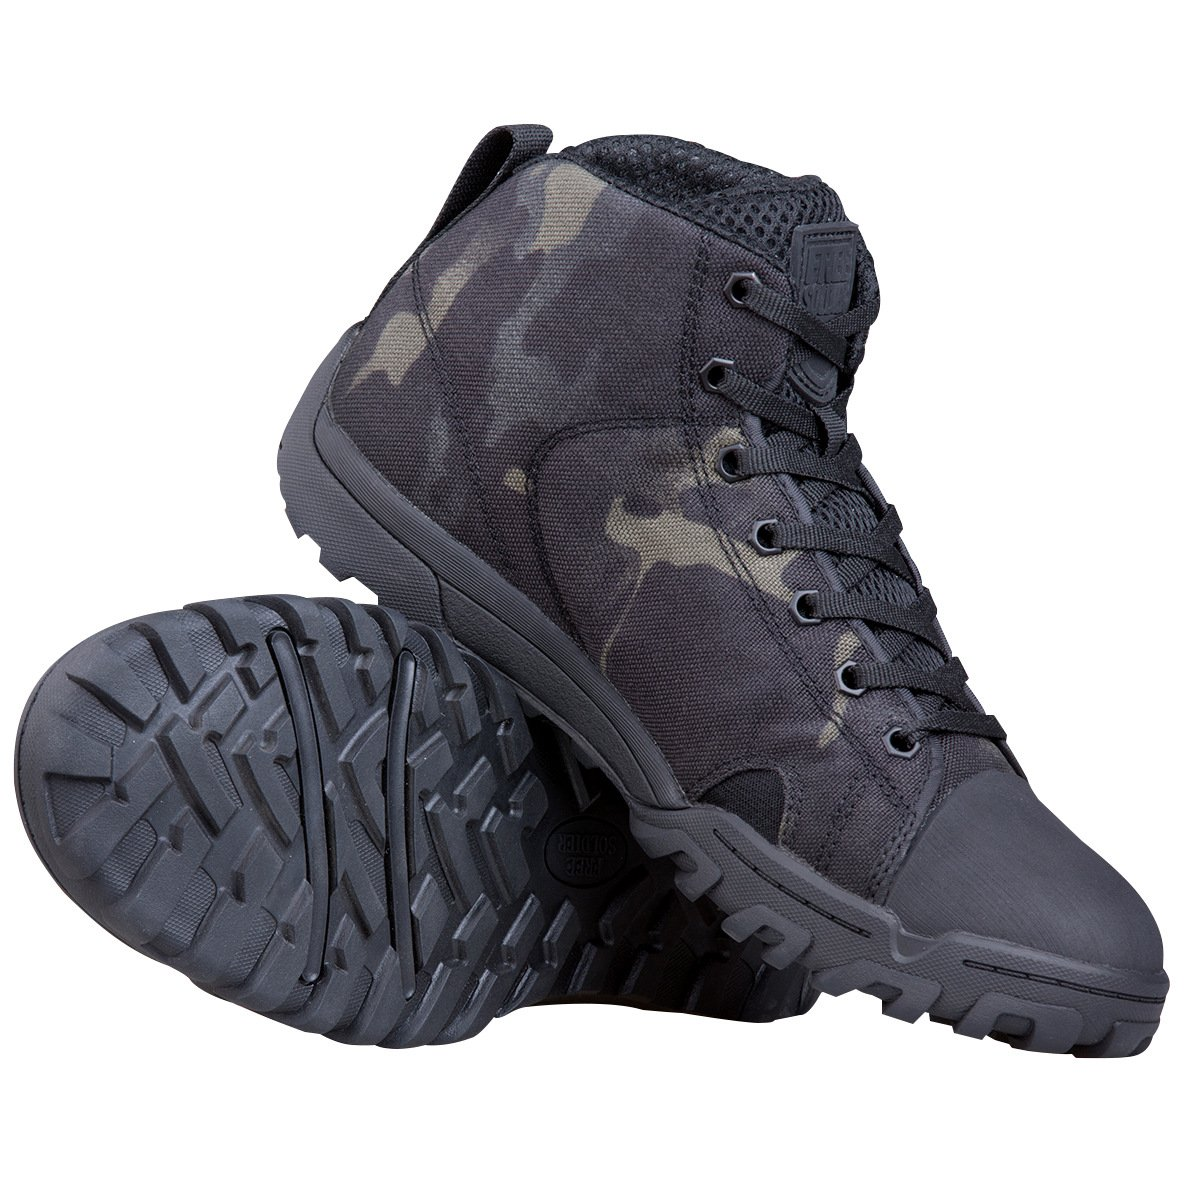 FREE SOLDIER Men's Tactical Boots Ankle Boots Lightweight Breathable Military Boots Strong Grip Camo Combat Boots for Work (Multicamo-Black, 10) by FREE SOLDIER